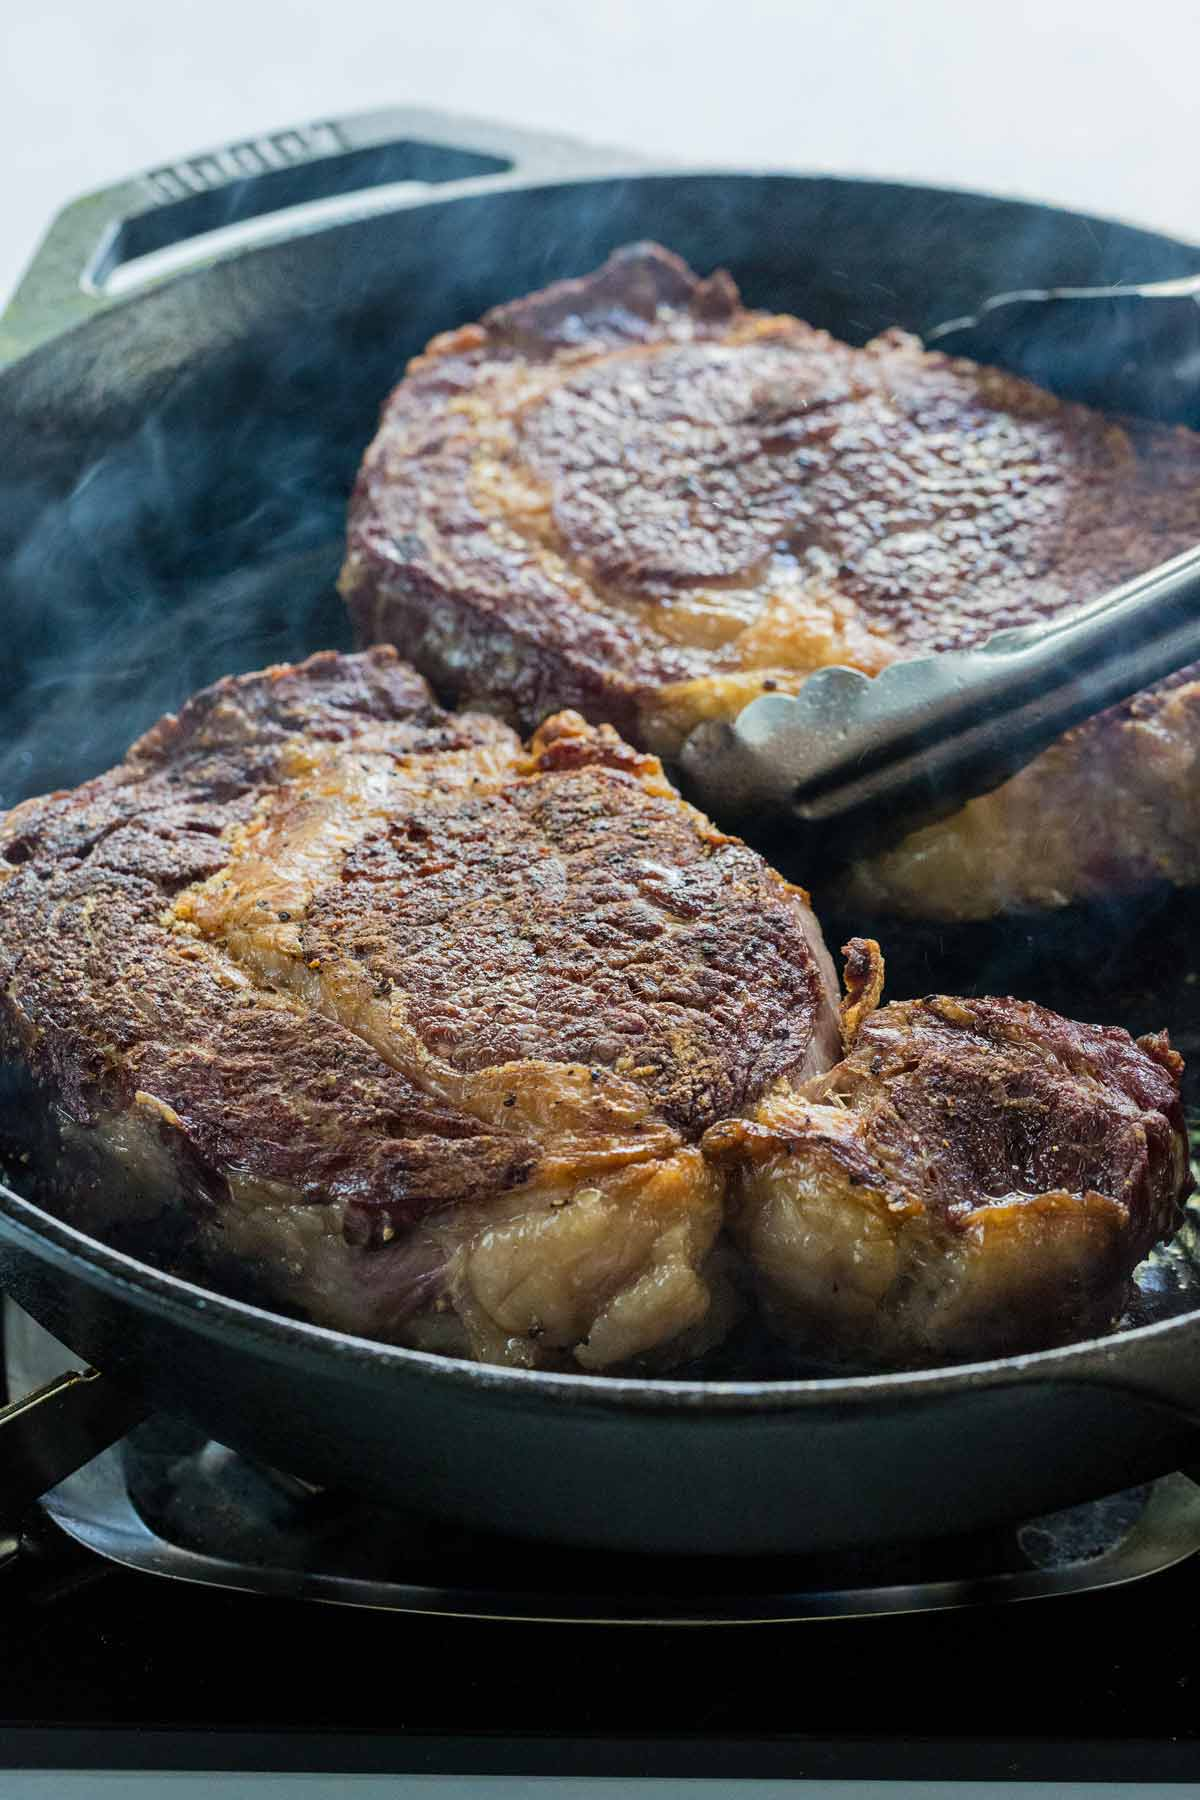 Two ribeye steaks cooking in a cast iron skillet